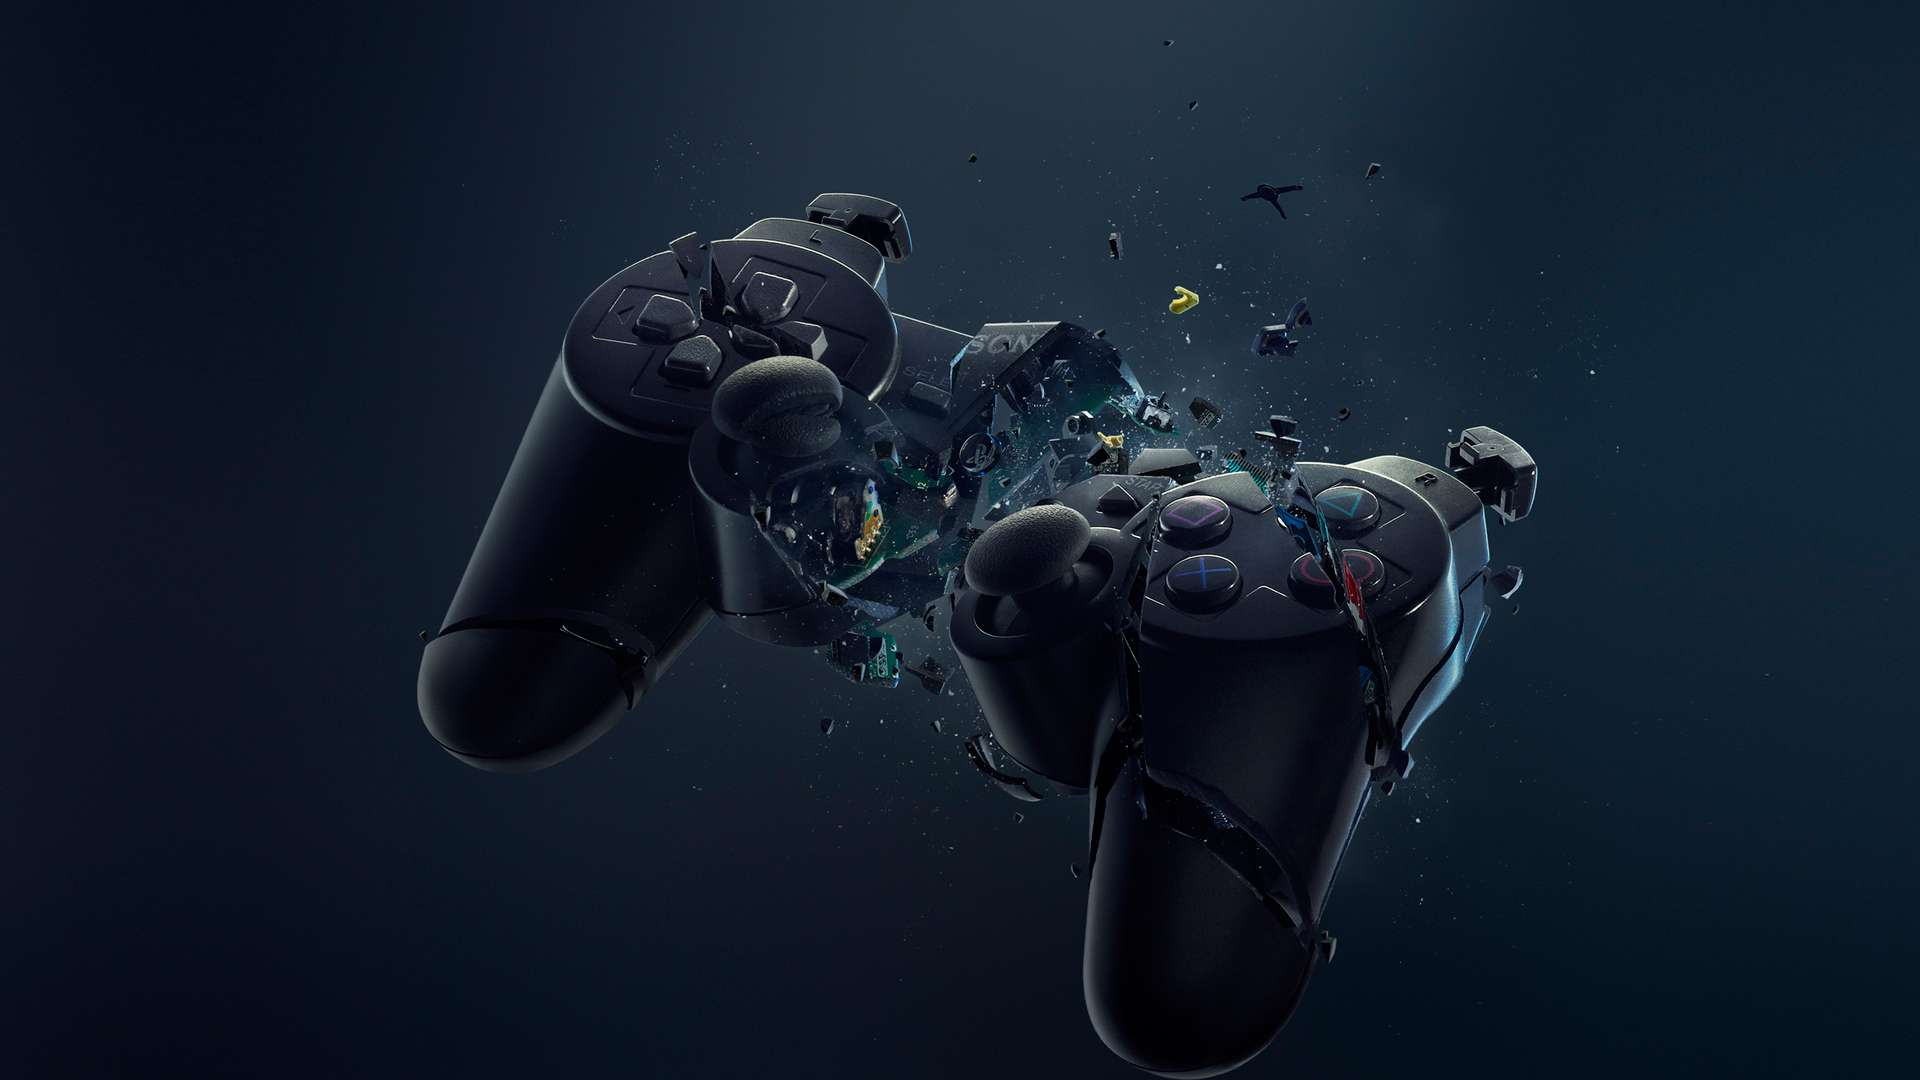 broken-playstation-3-controller-hd-wallpaper